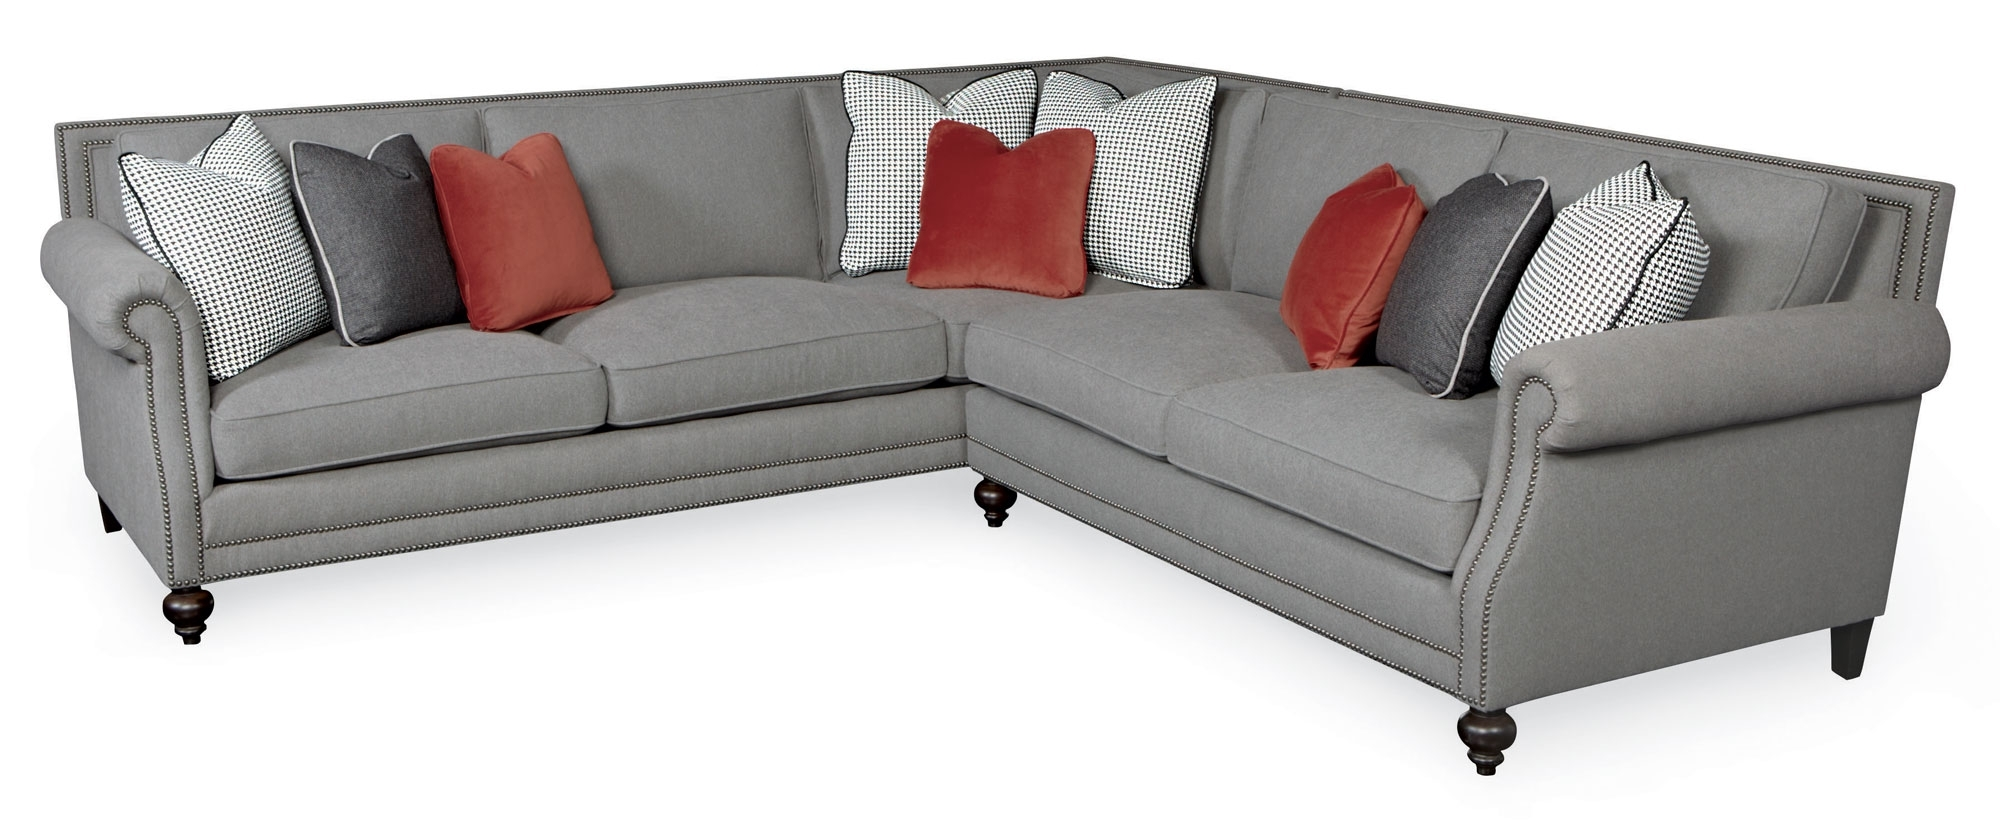 Most Up To Date Sectional Sofas With Nailheads For Sectional Sofa Design: Nailhead Sectional Sofa Fabric Leather (View 6 of 15)